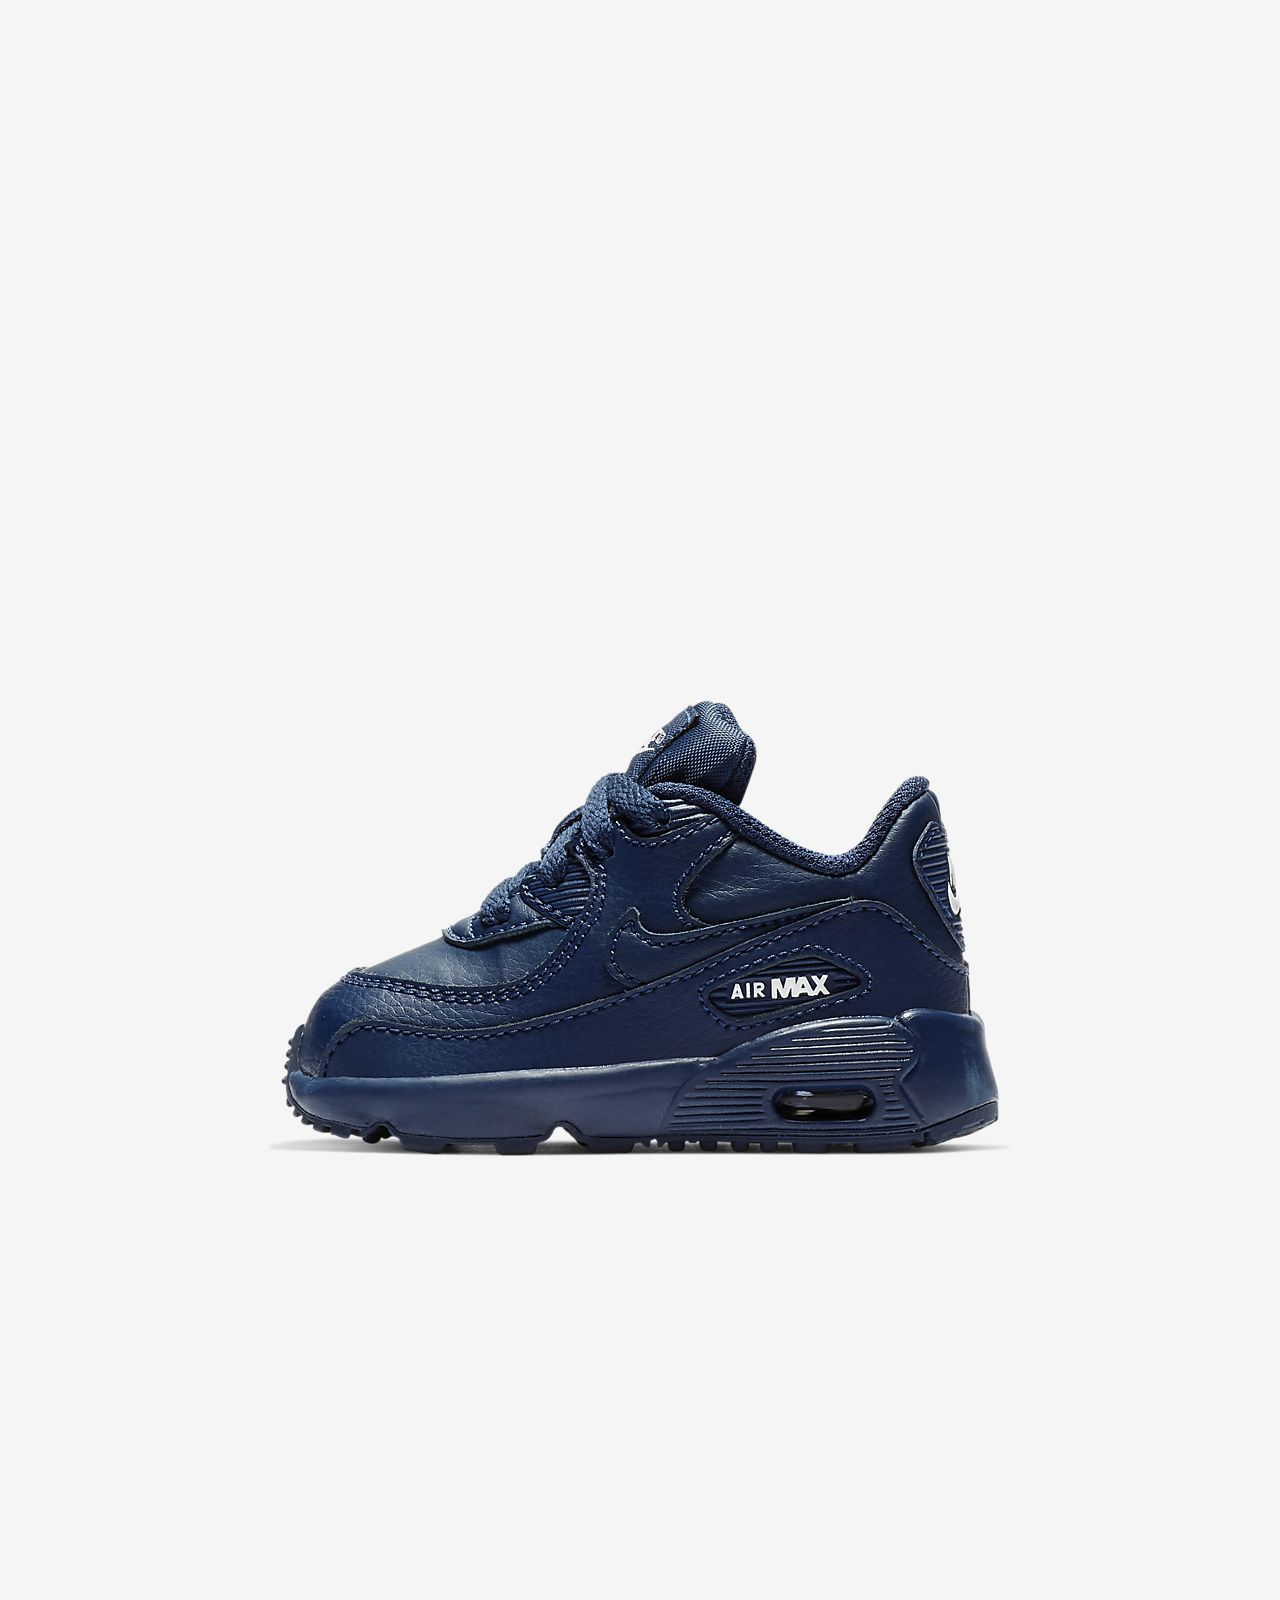 4bcc86bf54 Nike Air Max 90 Leather Infant/Toddler Shoe. Nike.com